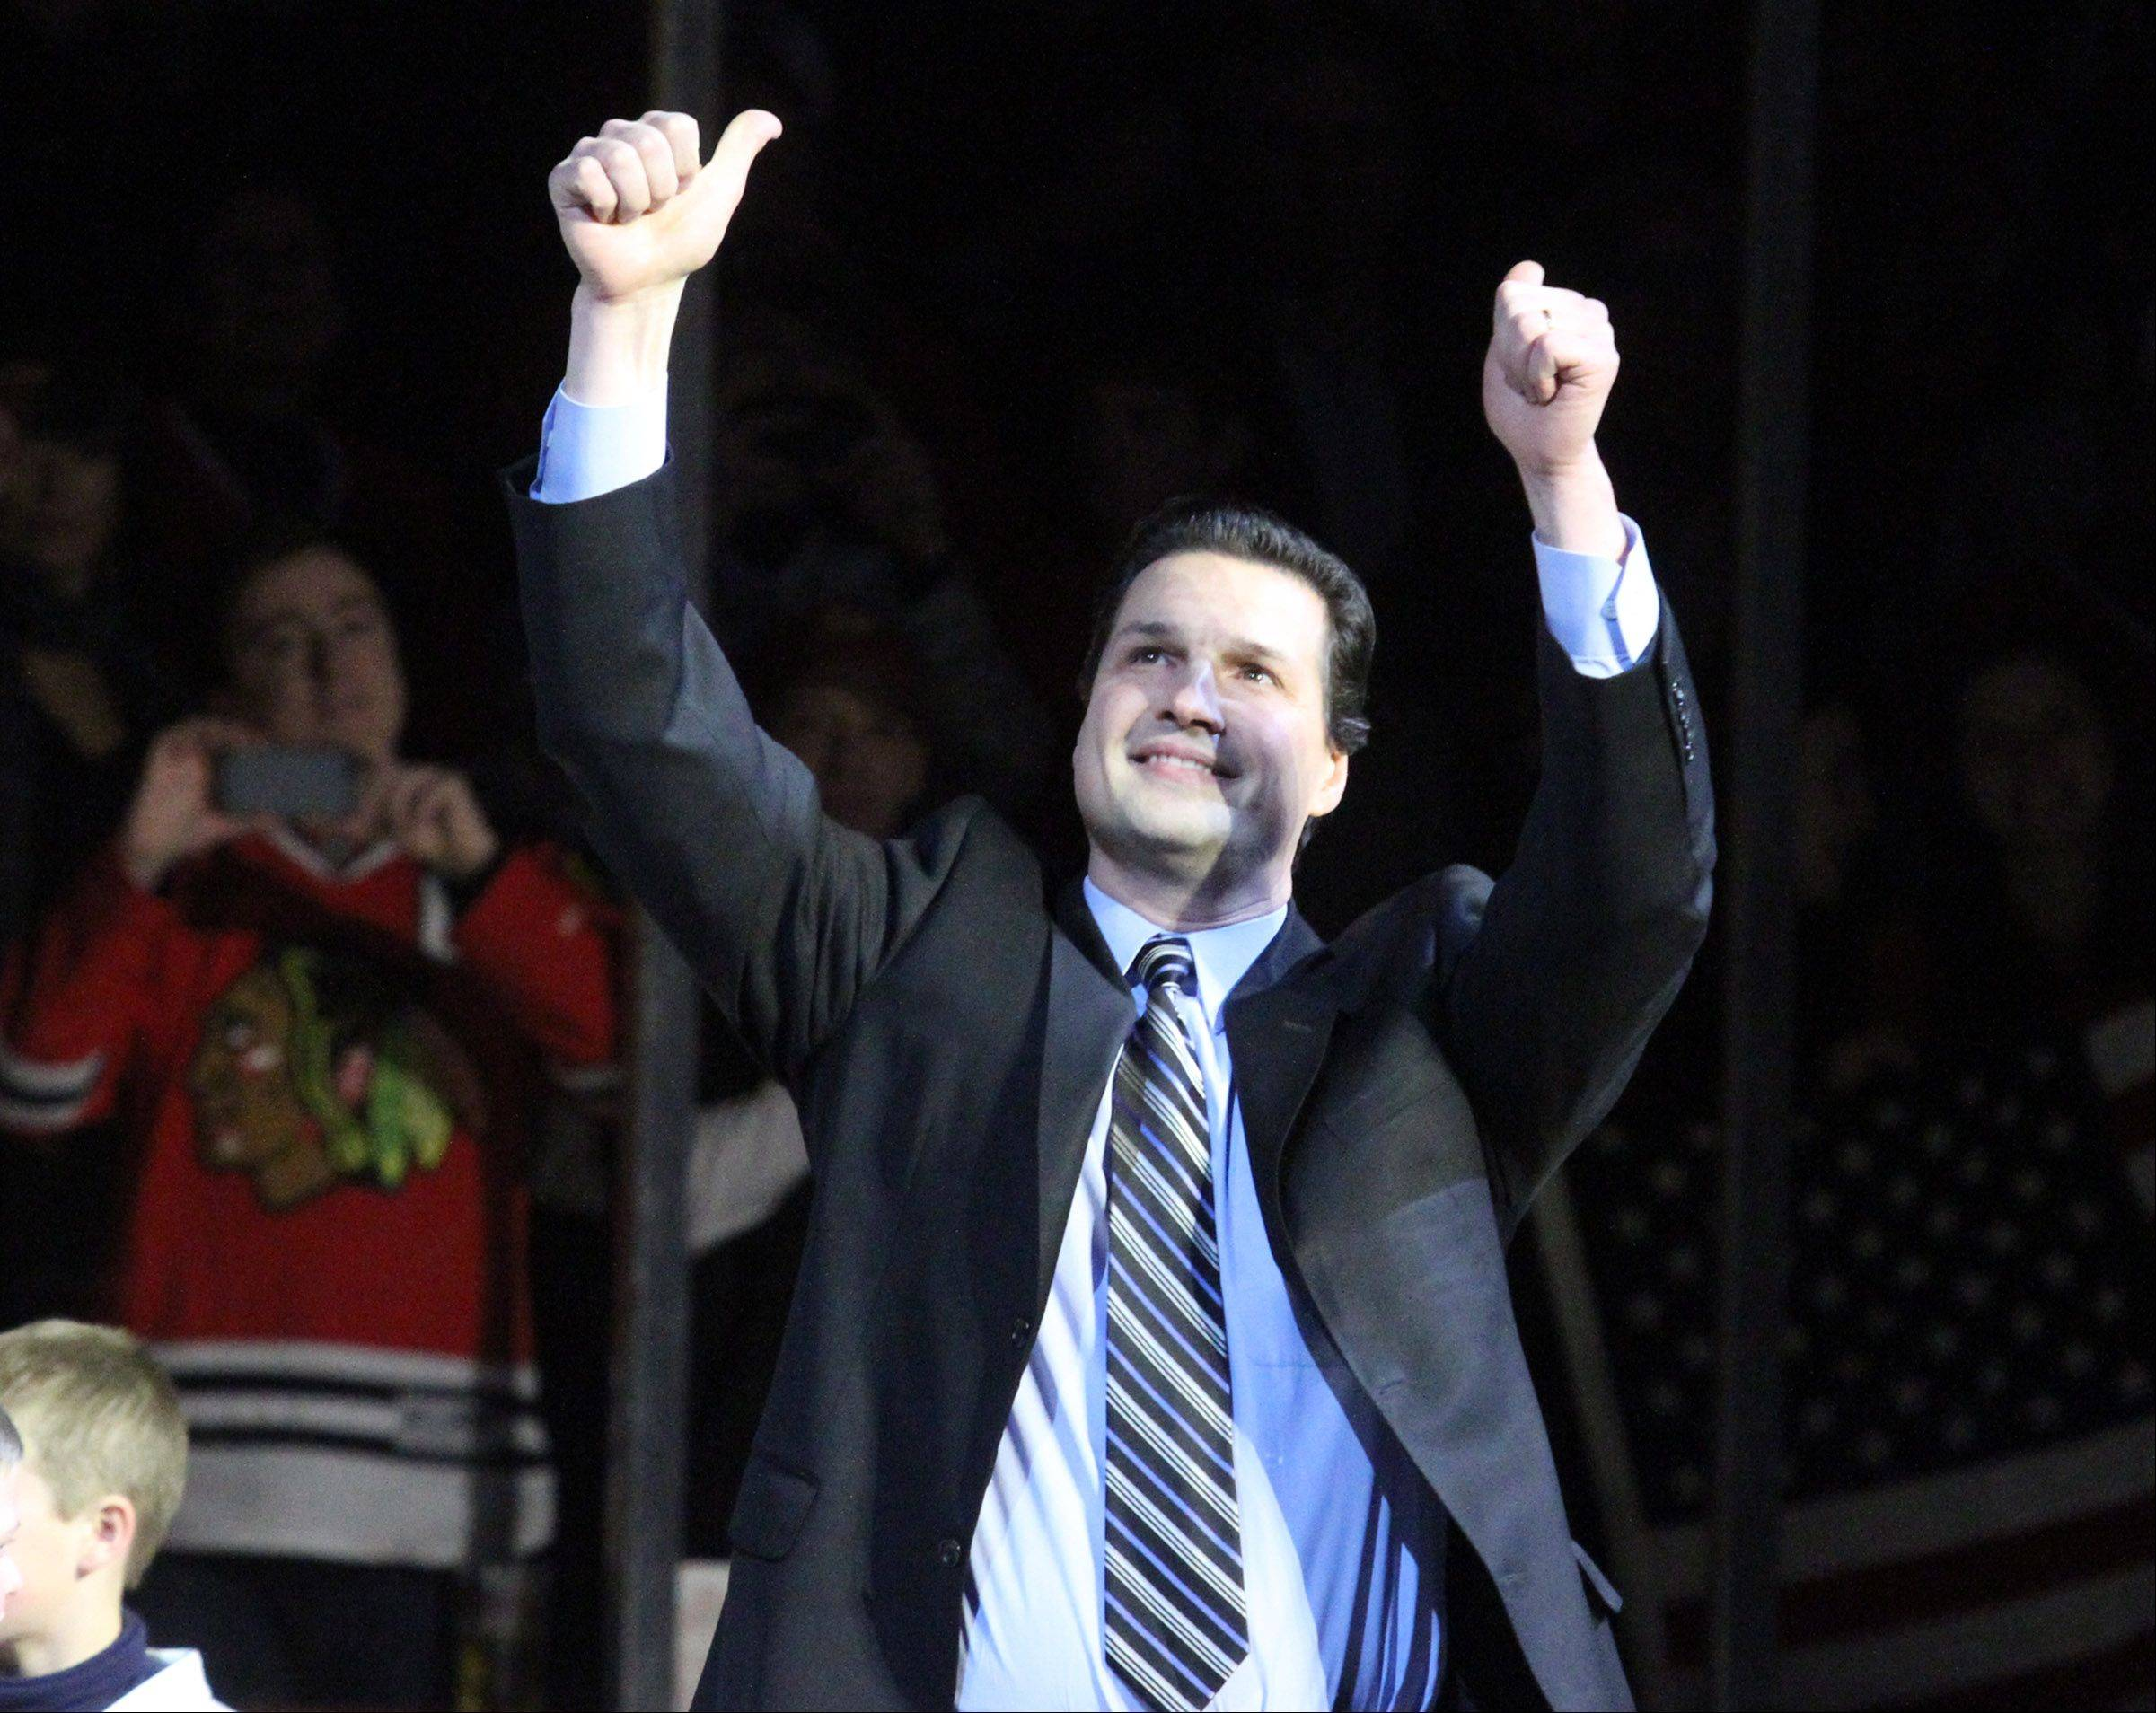 Former Blackhawks forward Eddie Olczyk, now a TV analyst for the team, will be an instructor for a summer hockey camp at Glacier Ice Arena in Vernon Hills.